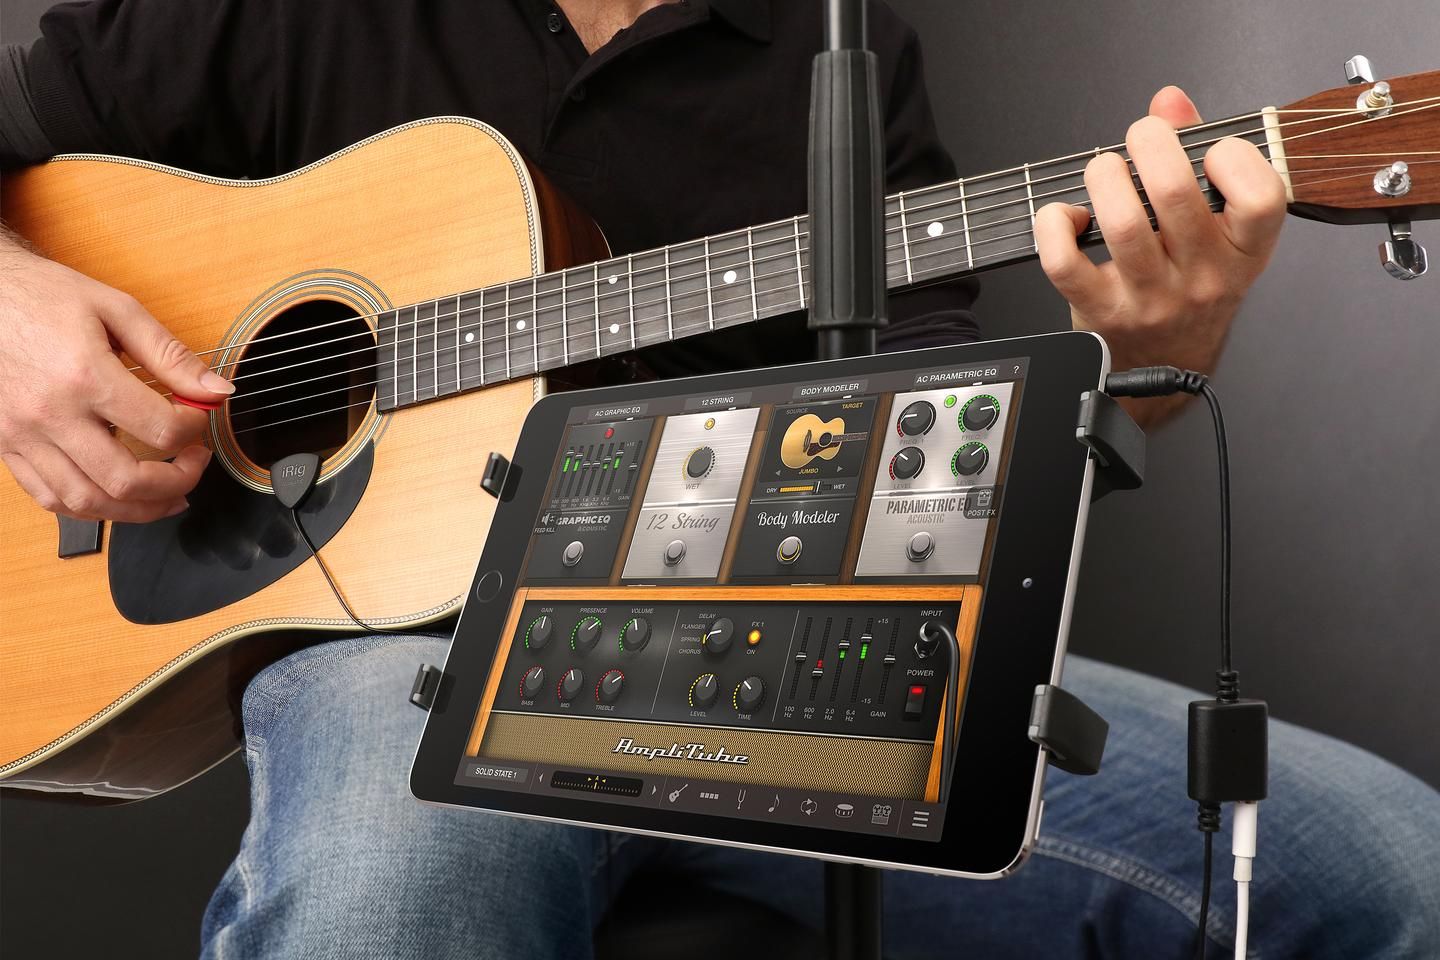 The iRig Acoustic from IK Multimedia costs $49.99